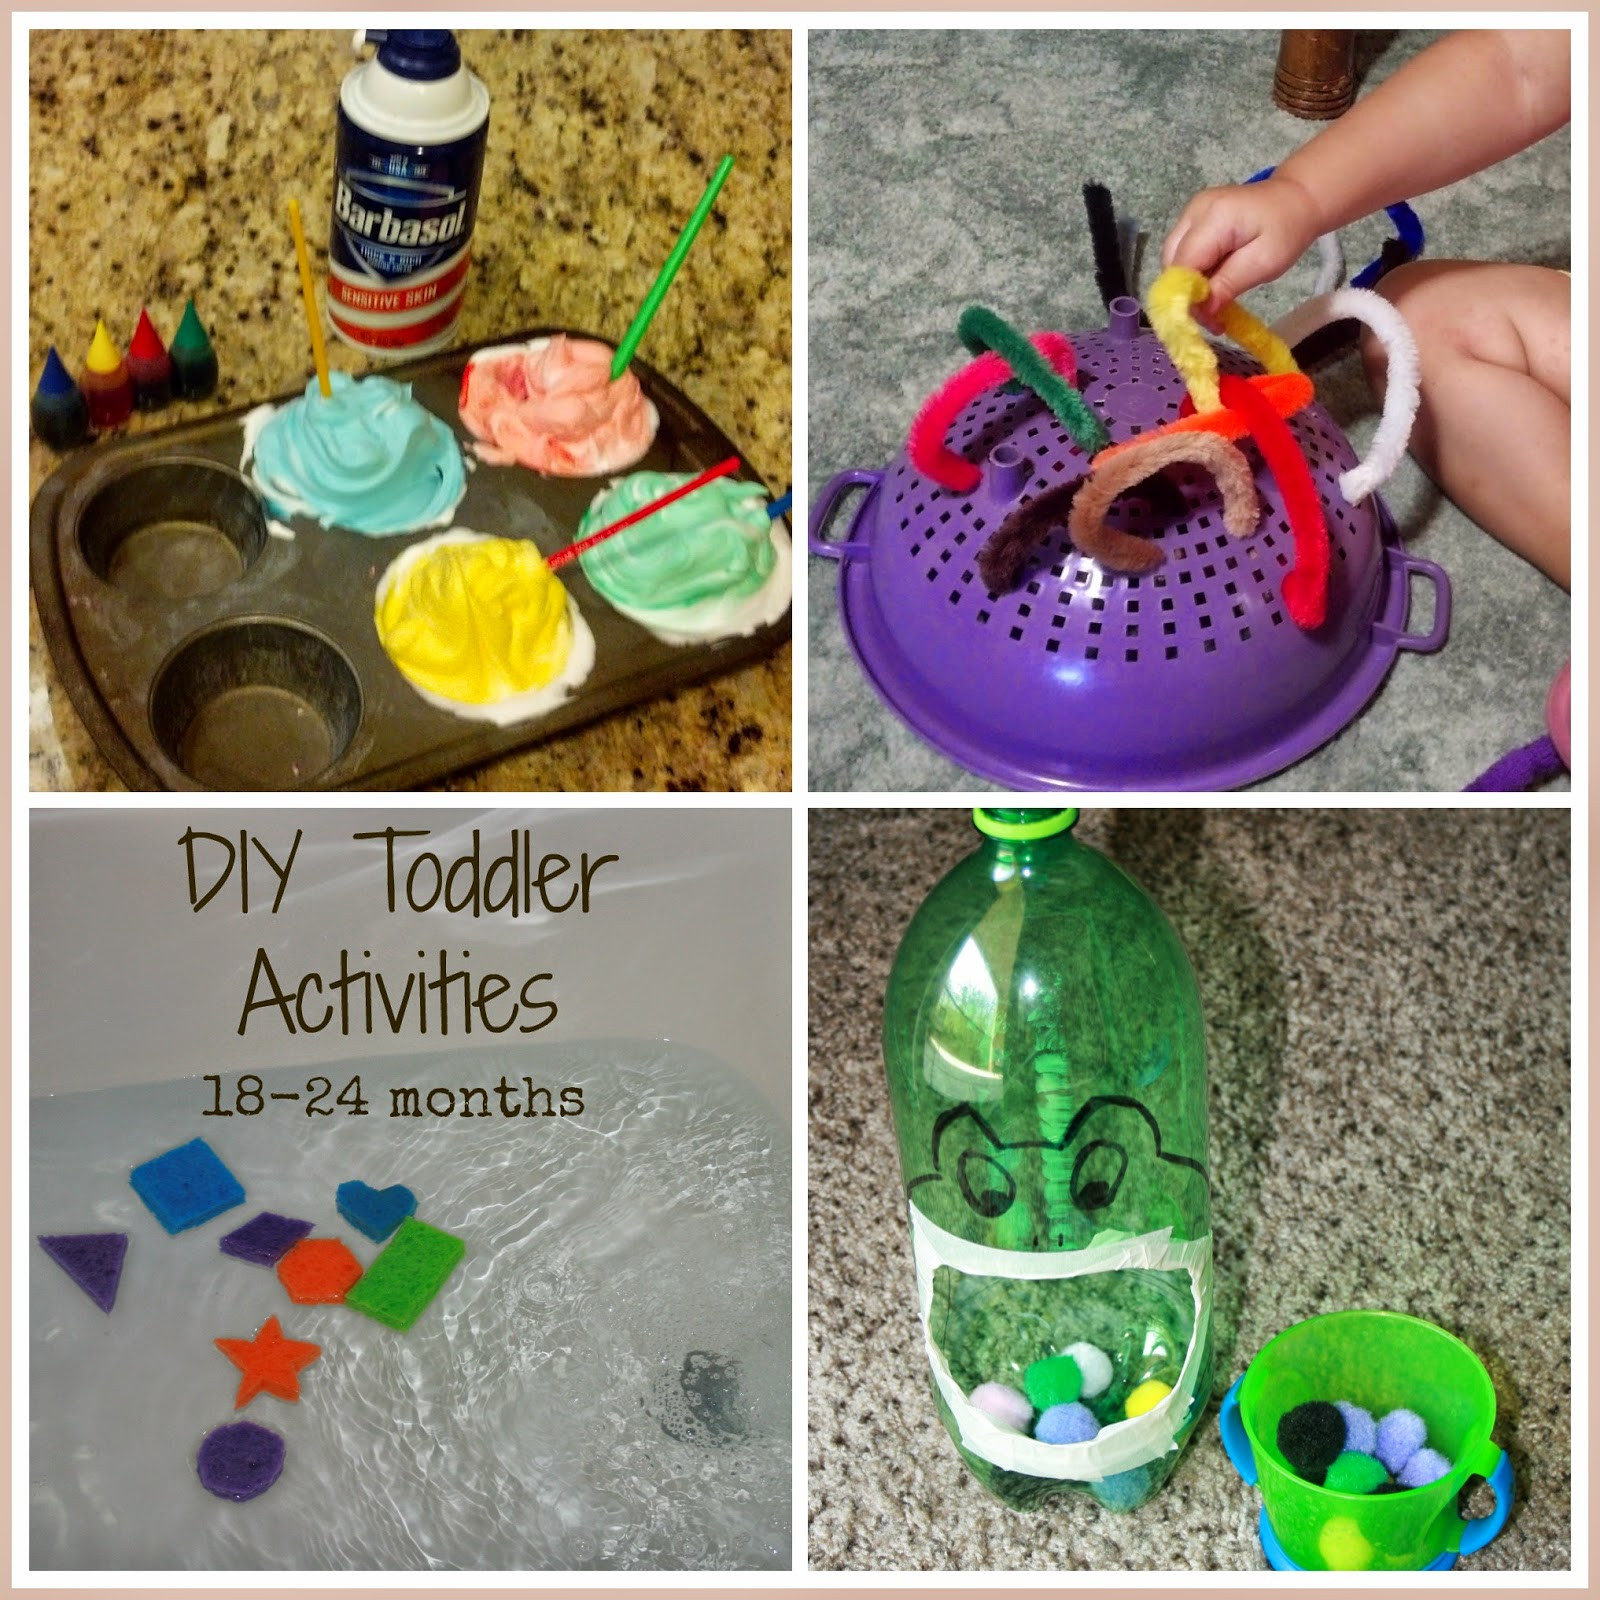 Best ideas about DIY Toddler Activities . Save or Pin Hassle Free Housewife Easy Educational Activities for Now.